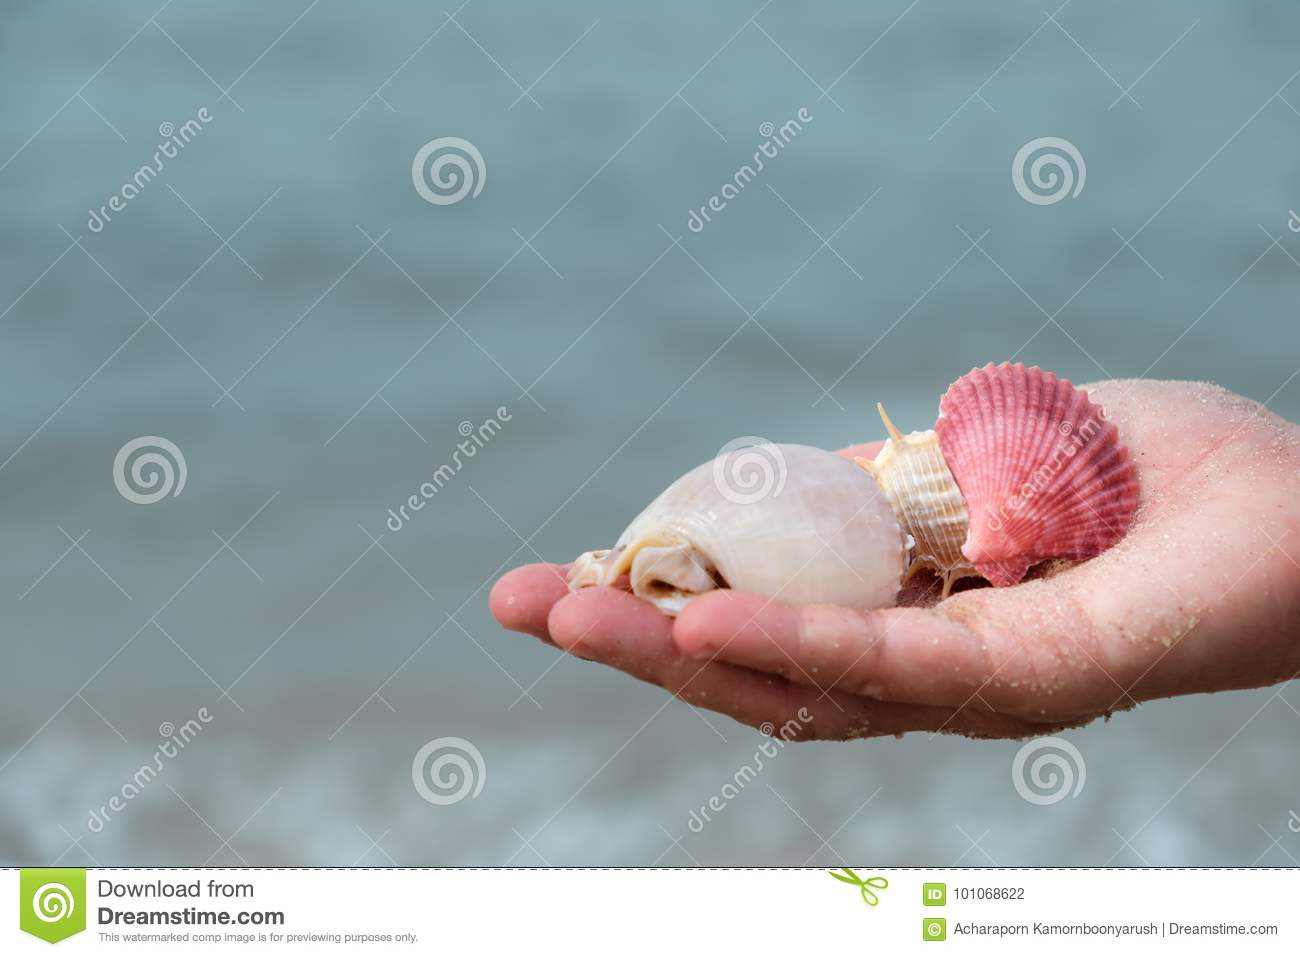 Many shells on woman`s hands